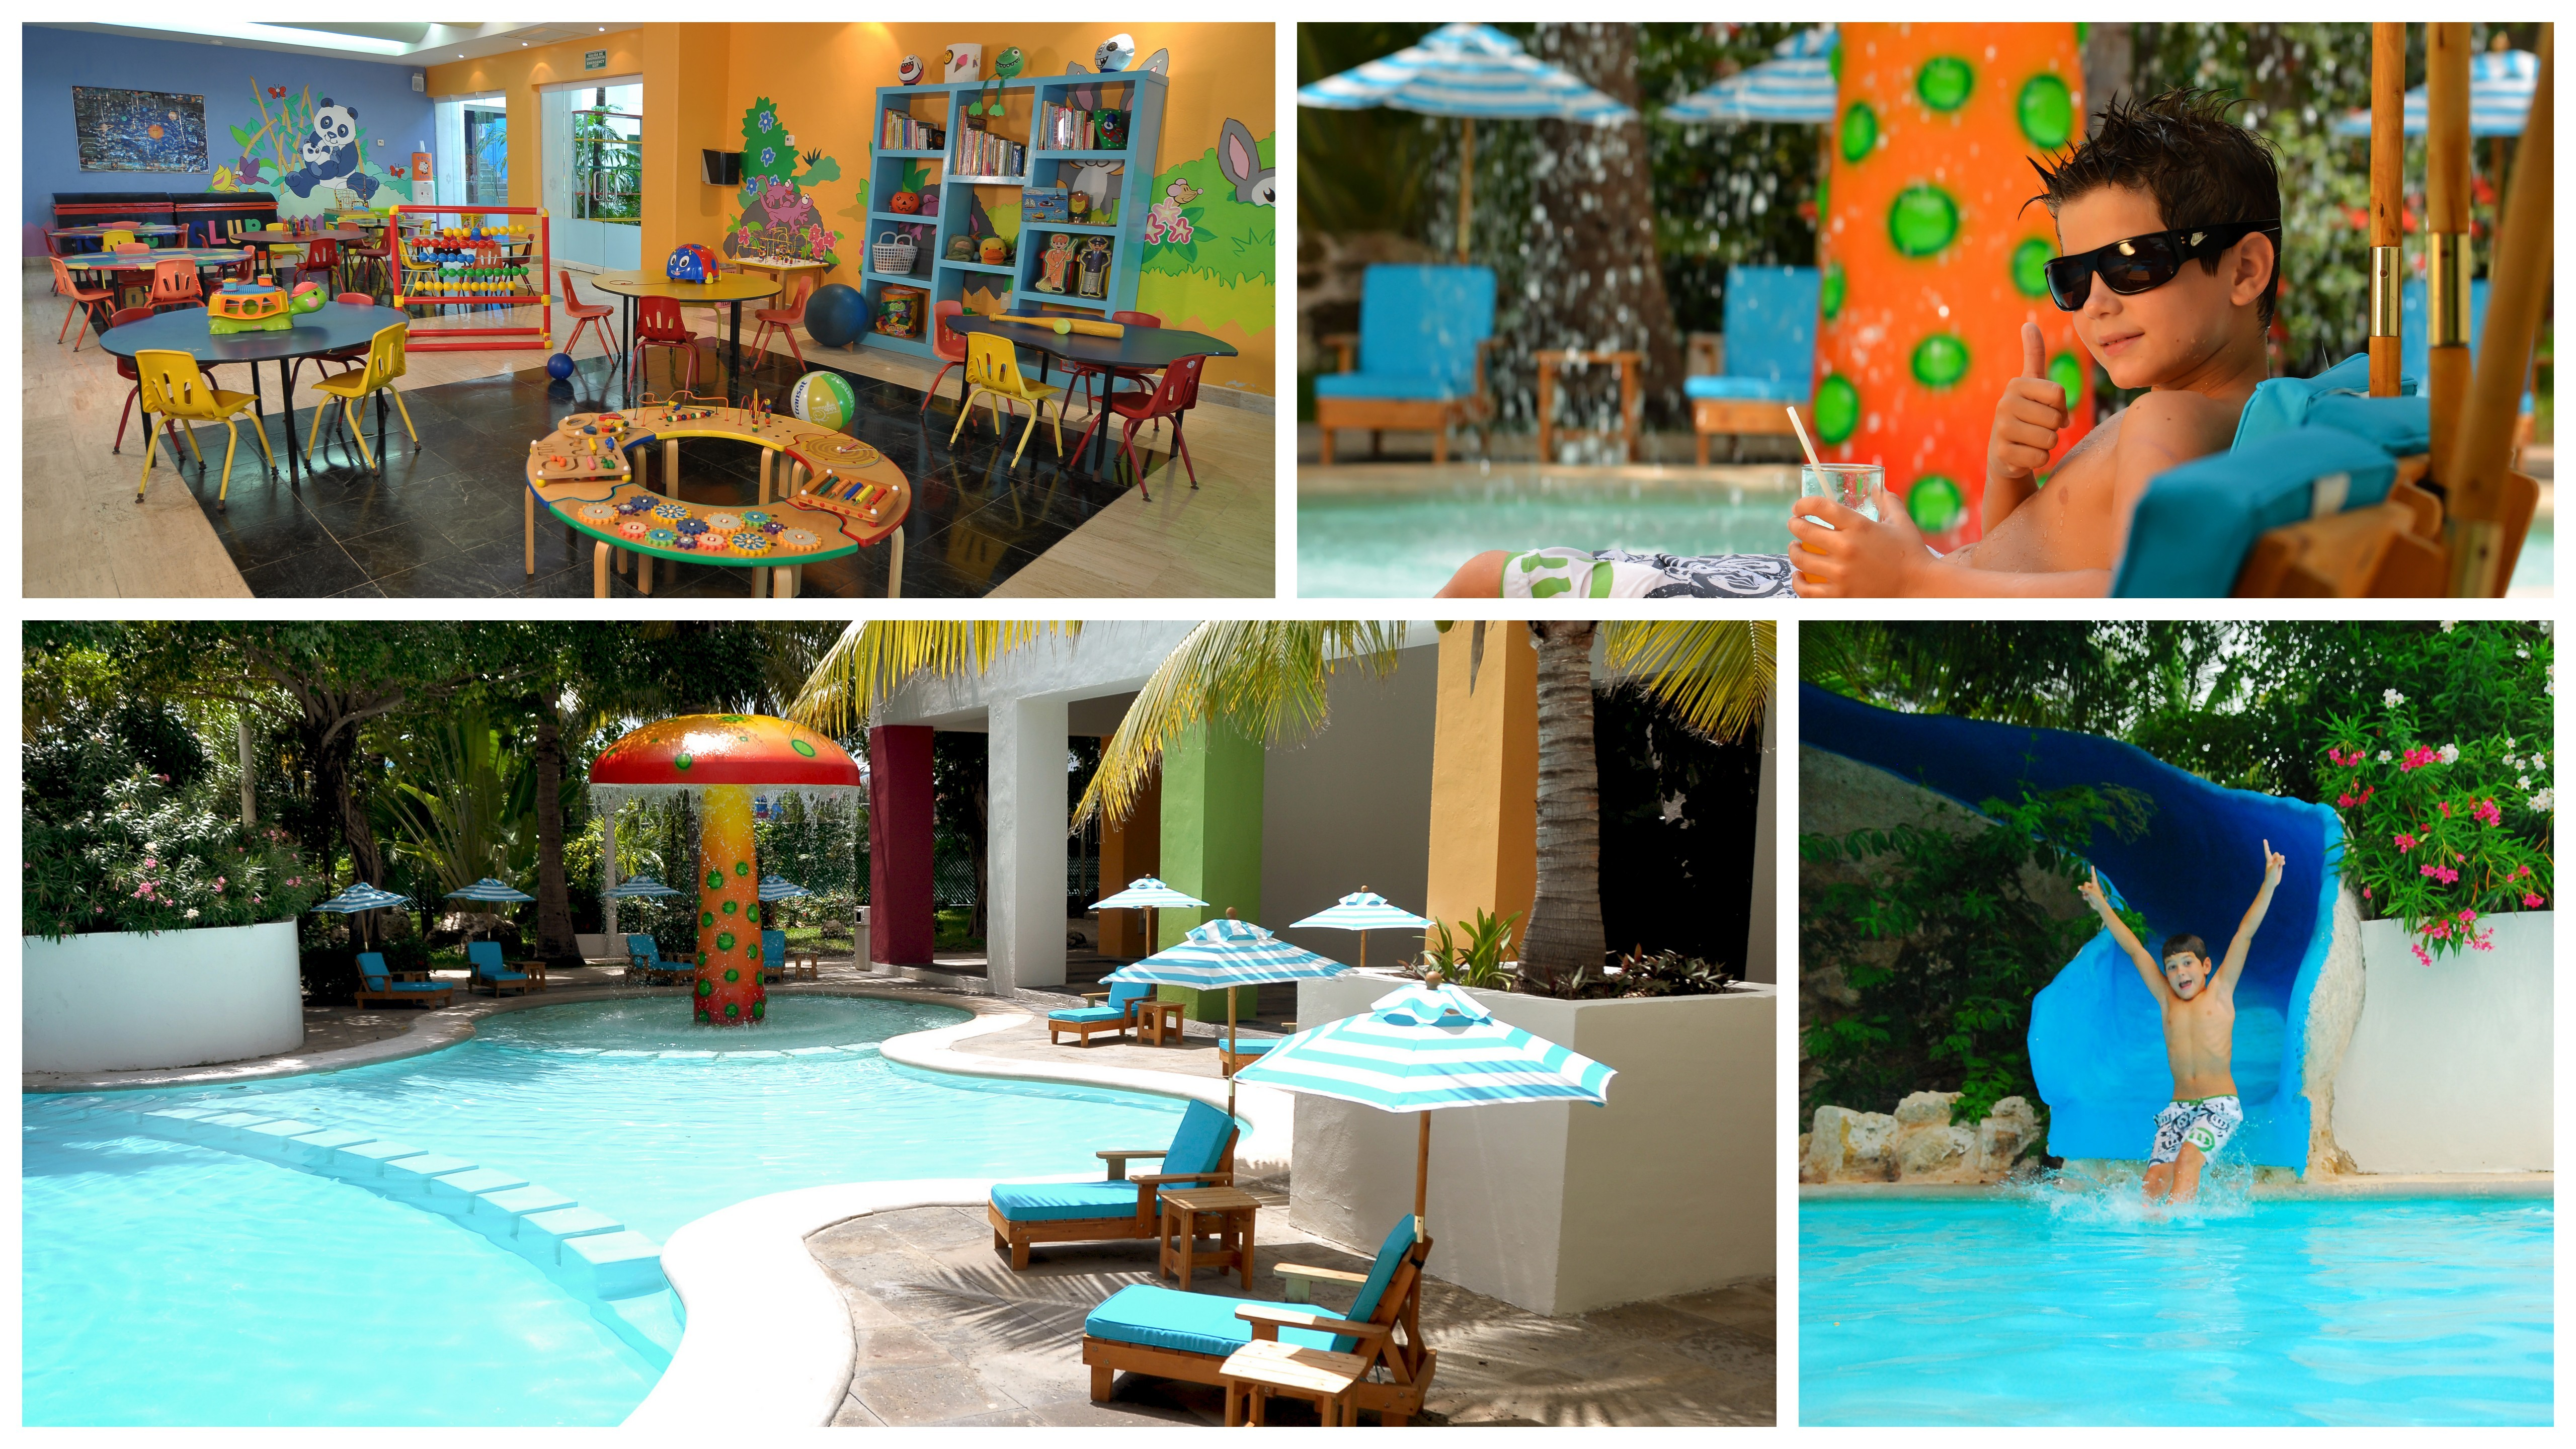 Kids and teens 17 or under, will stay, play and eat free in paradise. Our family friendly resorts are truly a paradise for kids and teens. Palace's littlest guests will enjoy our state-of-the-art Playroom, while teens can explore a world of their own.